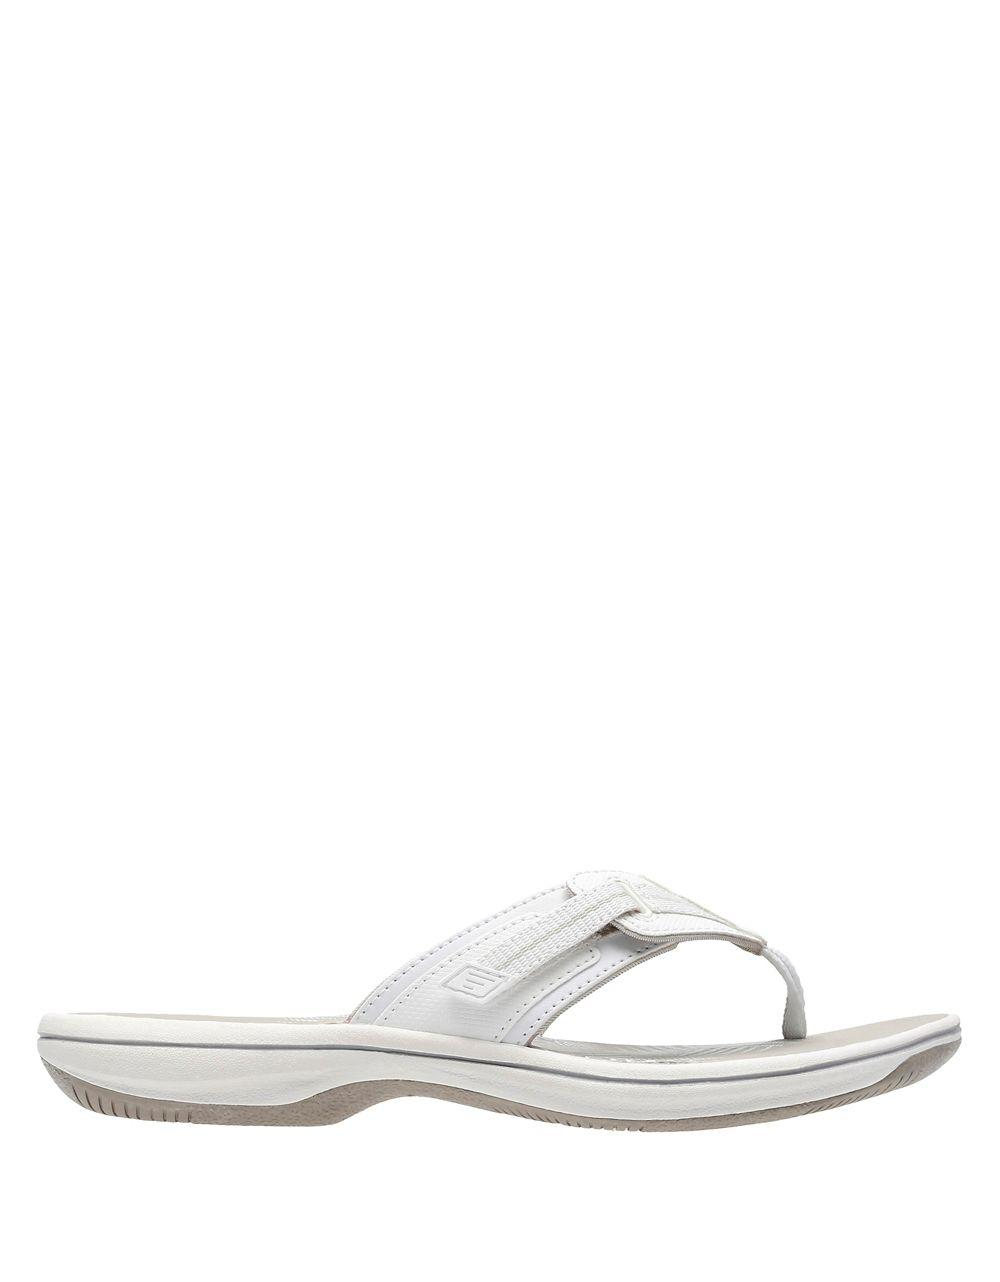 b36688cac413 Clarks Brinkley Jazz Sandals in White - Lyst